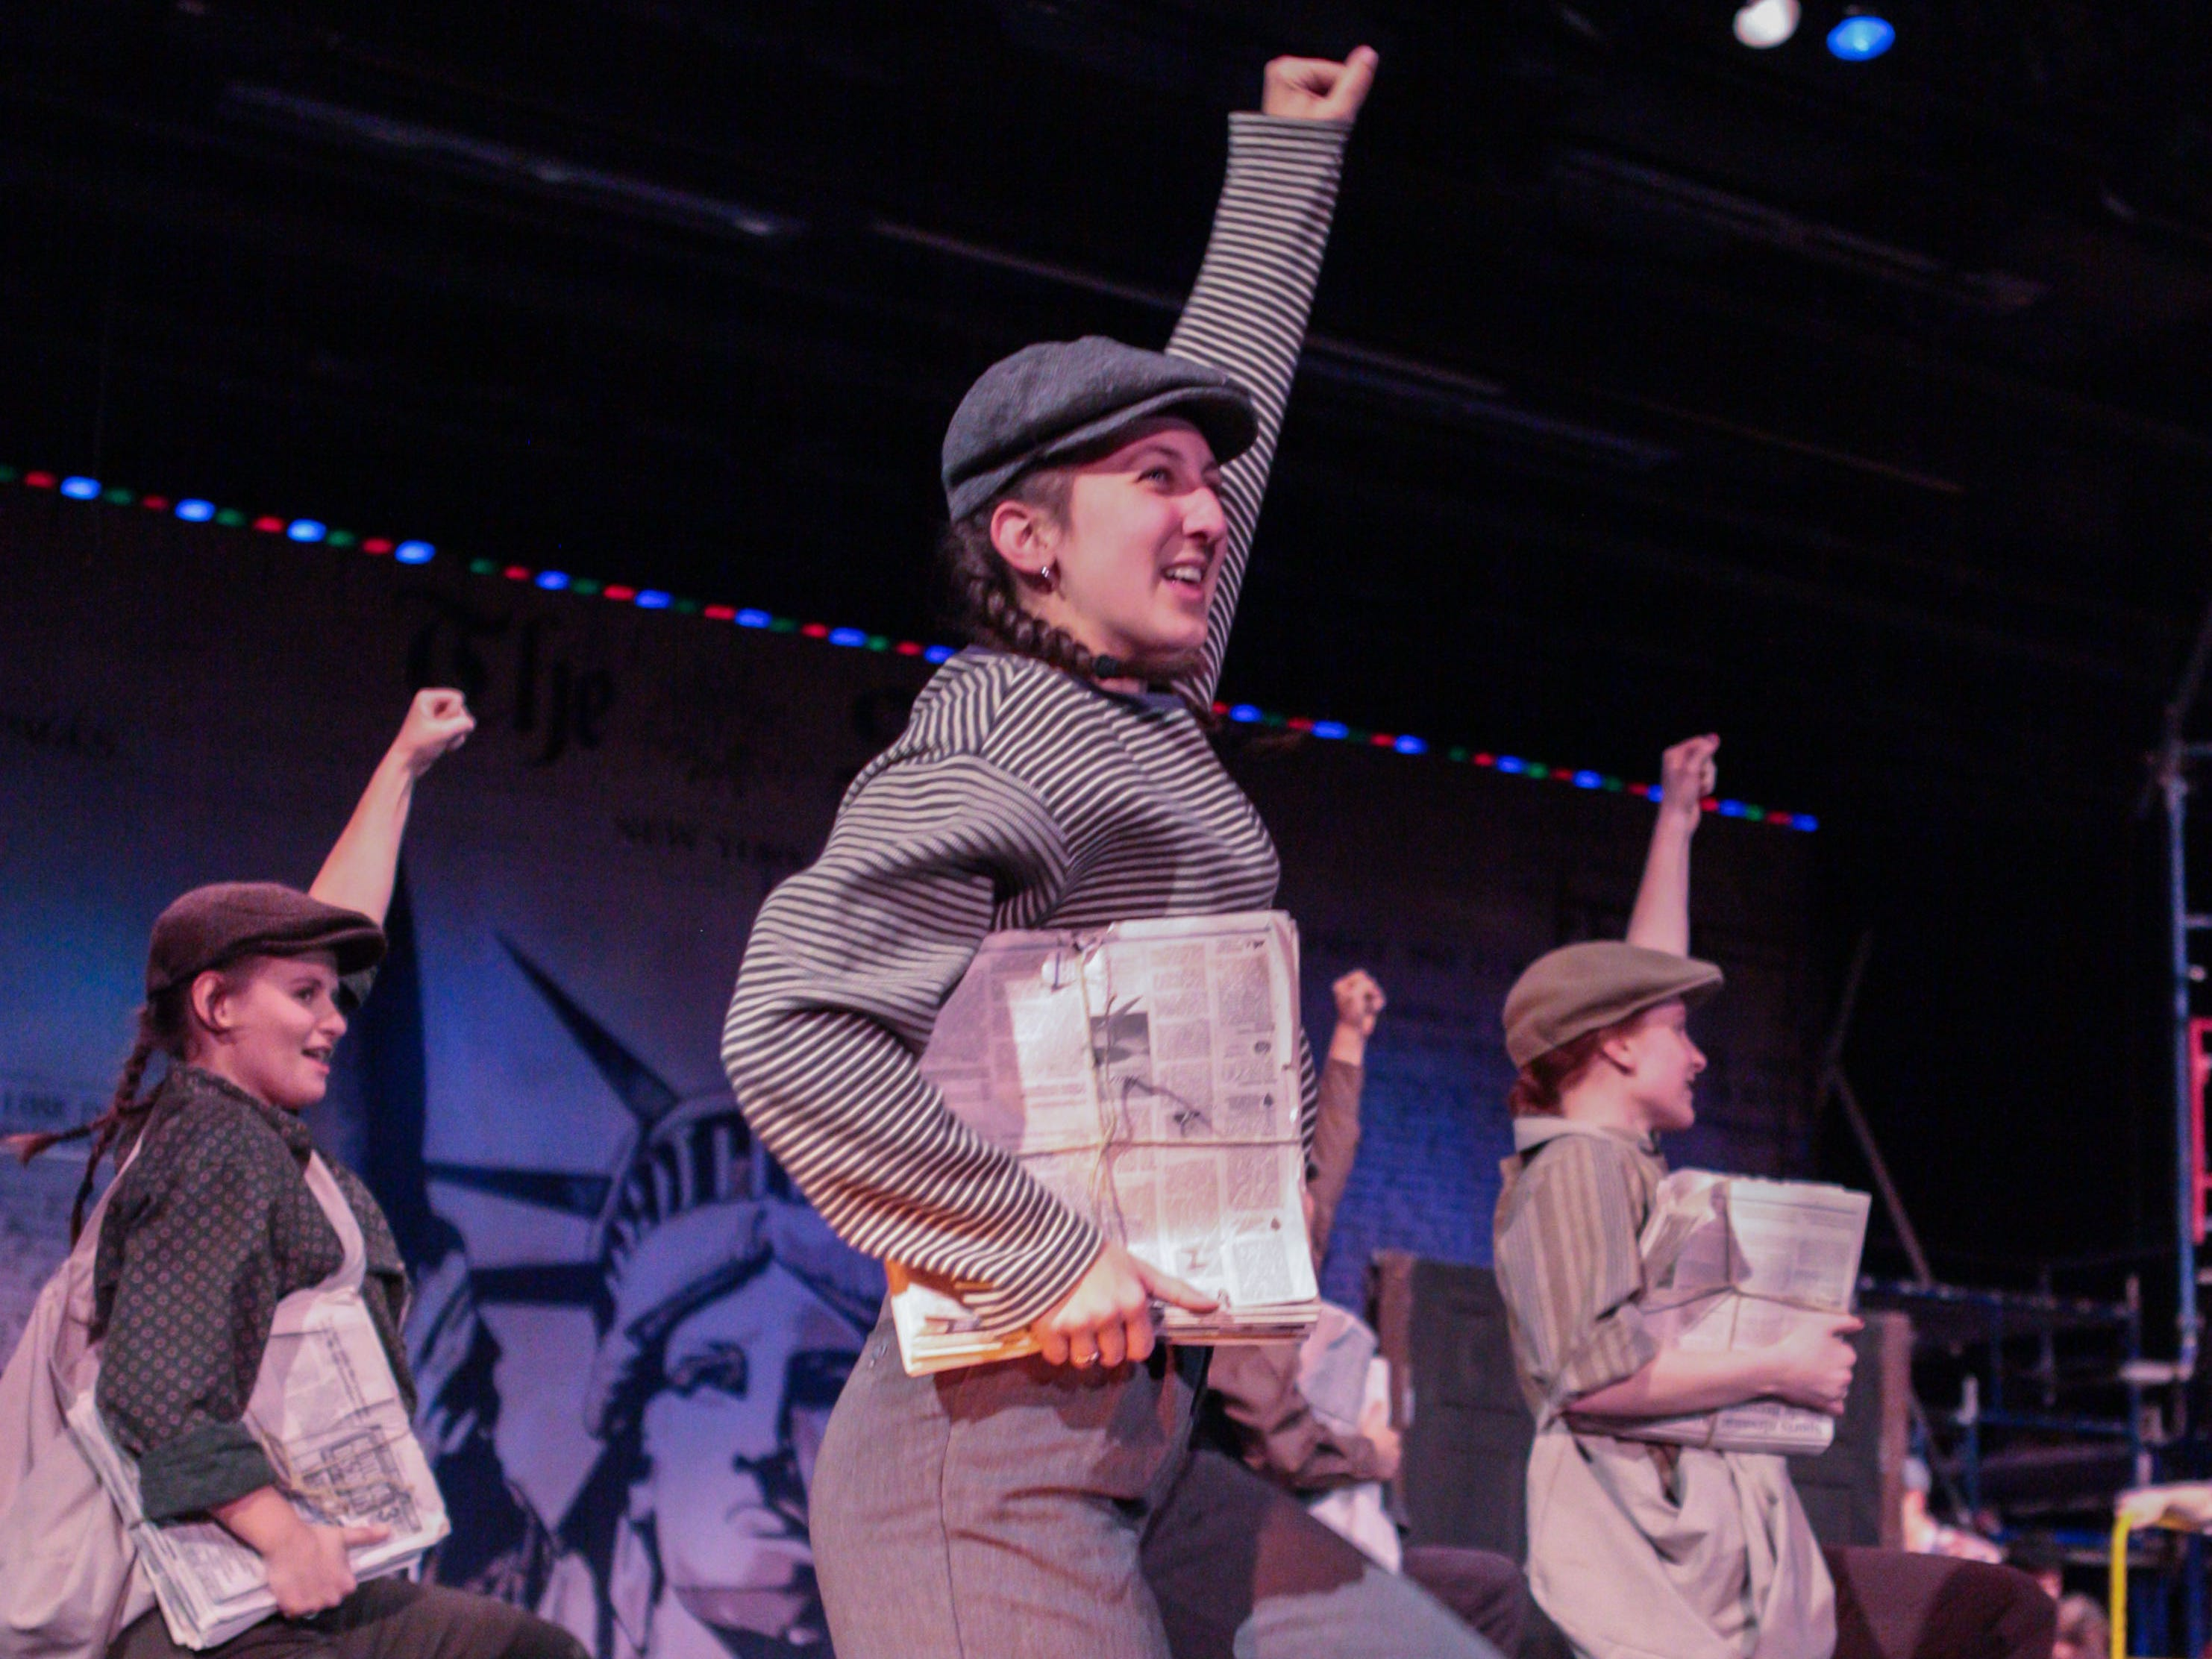 Greendale High School drama students perform a scene from their spring musical NEWSIES. Public performances are at 7:30 p.m. March 15 and 16. Tickets are $10 for adults and $8 for students 18 and under. For more info visit bit.ly/greendalenewsies.